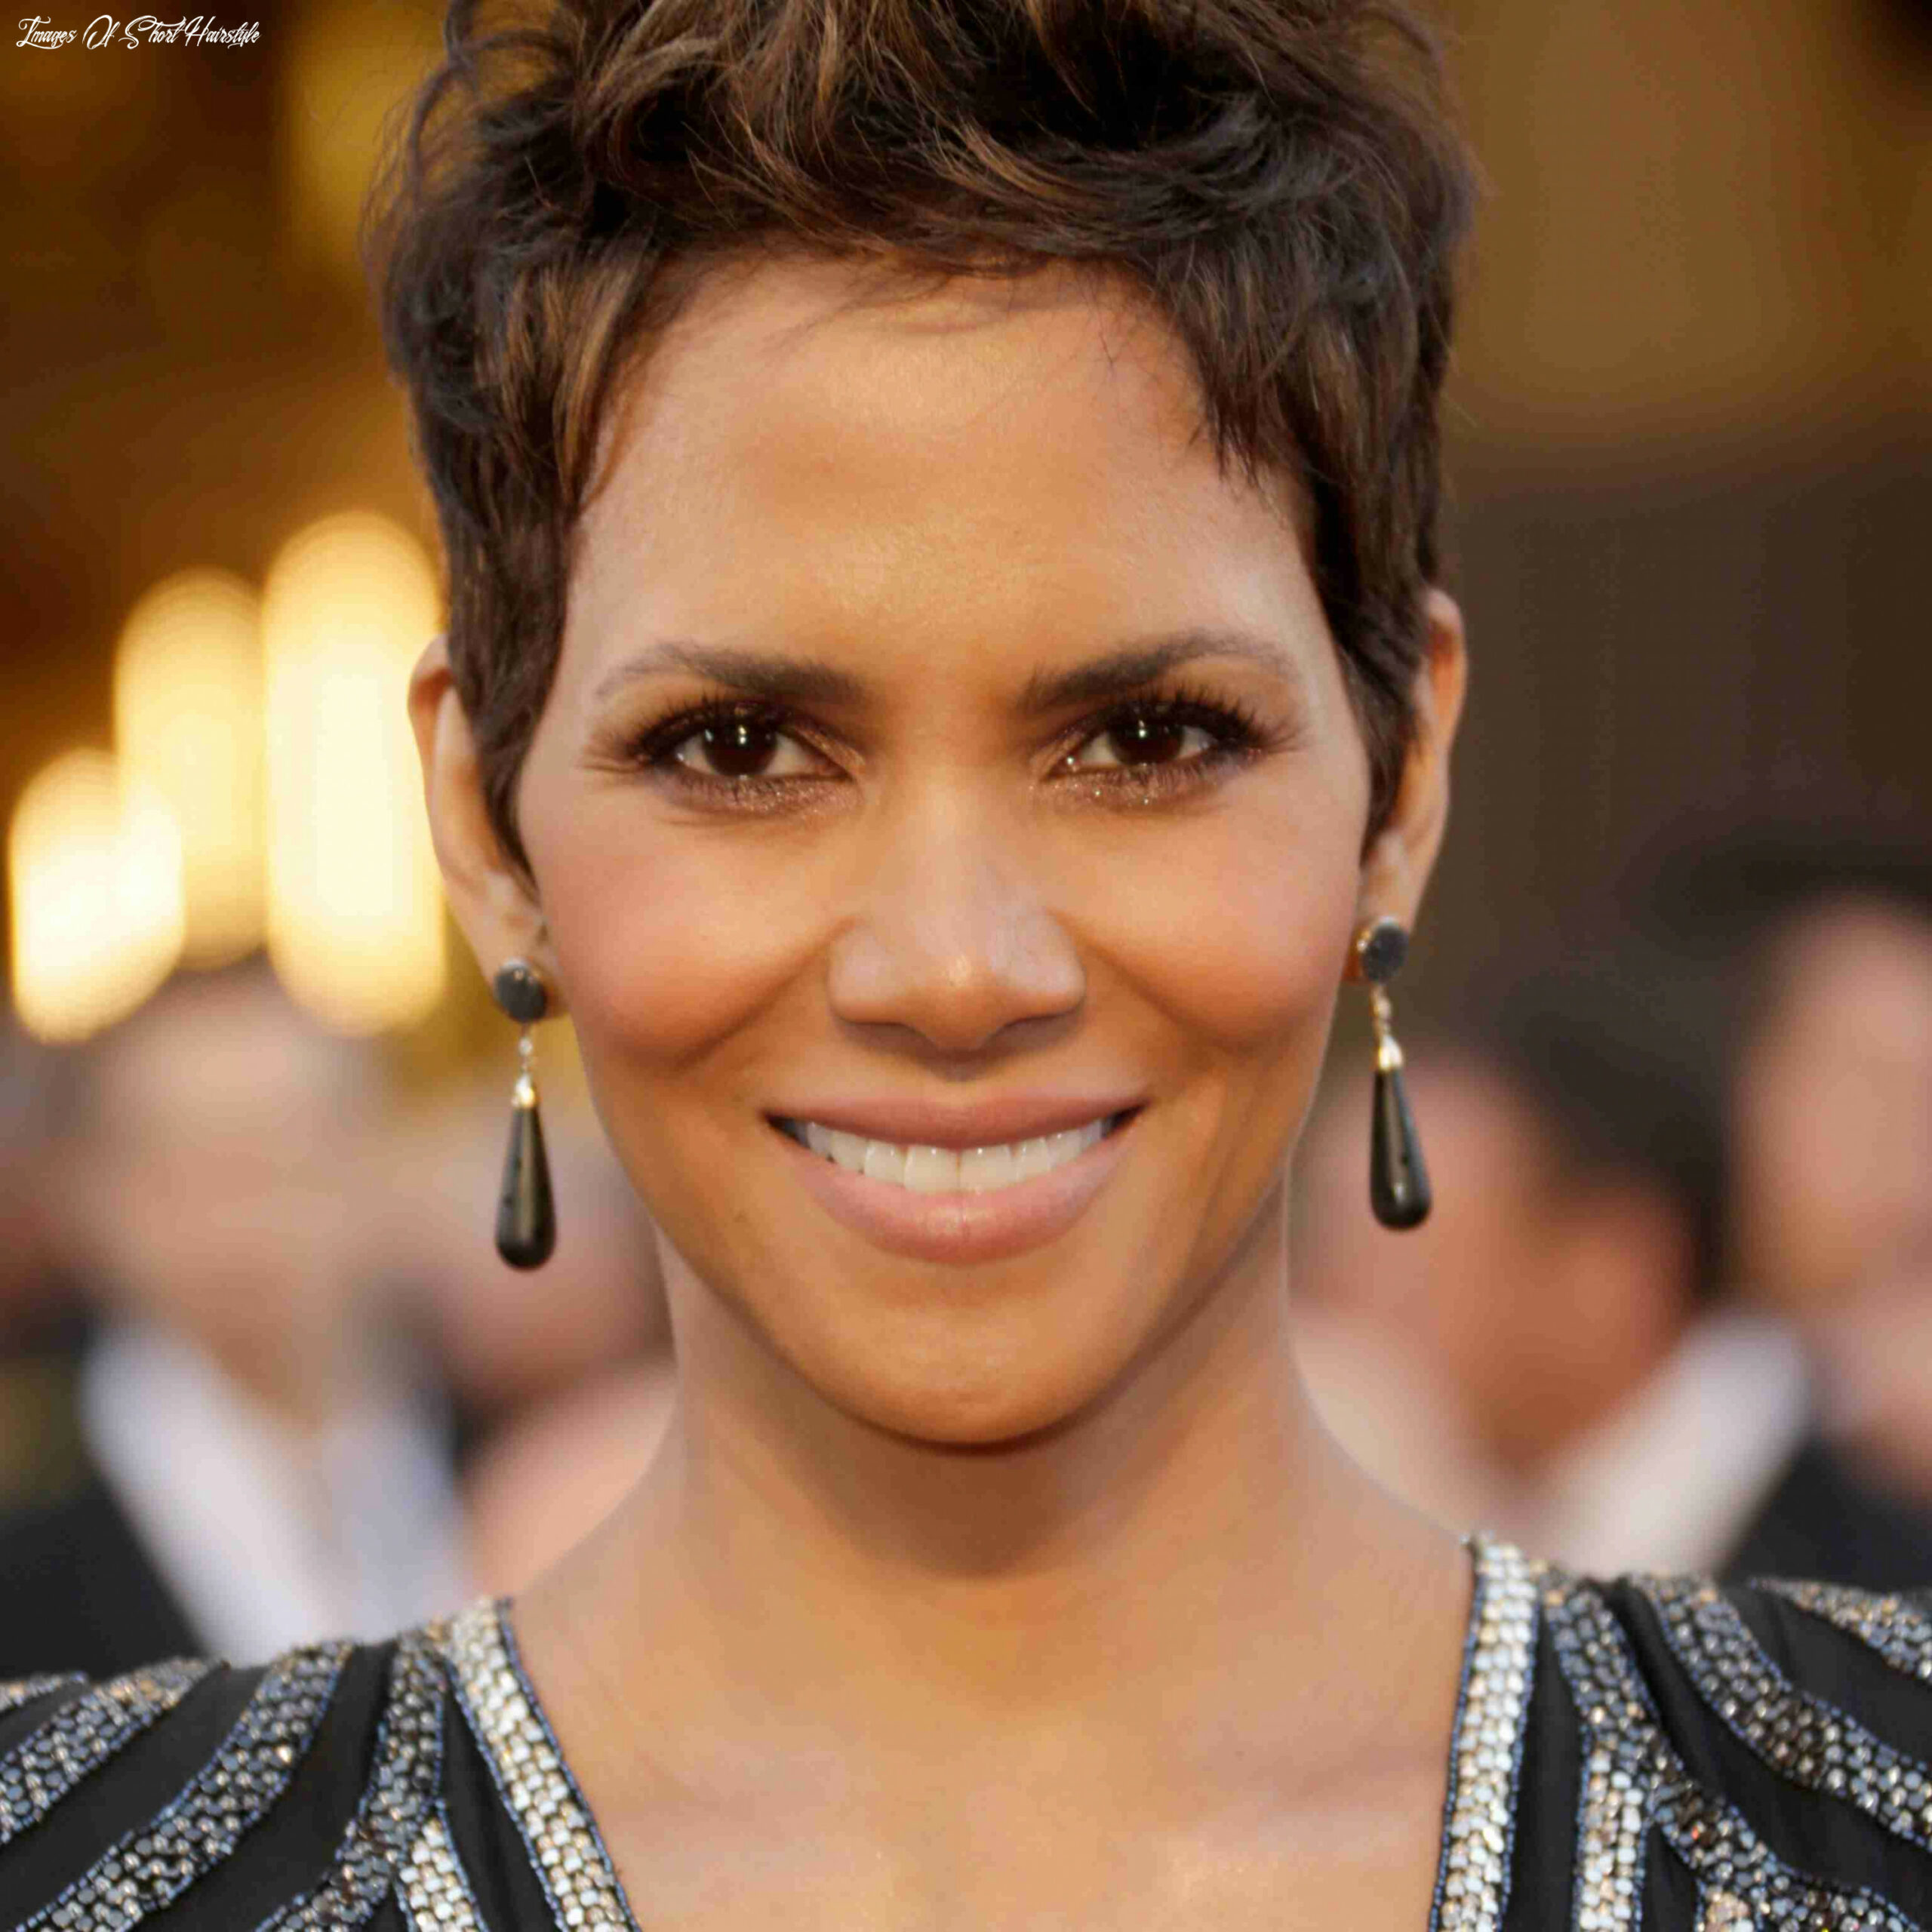 9 classic and cool short hairstyles for older women images of short hairstyle